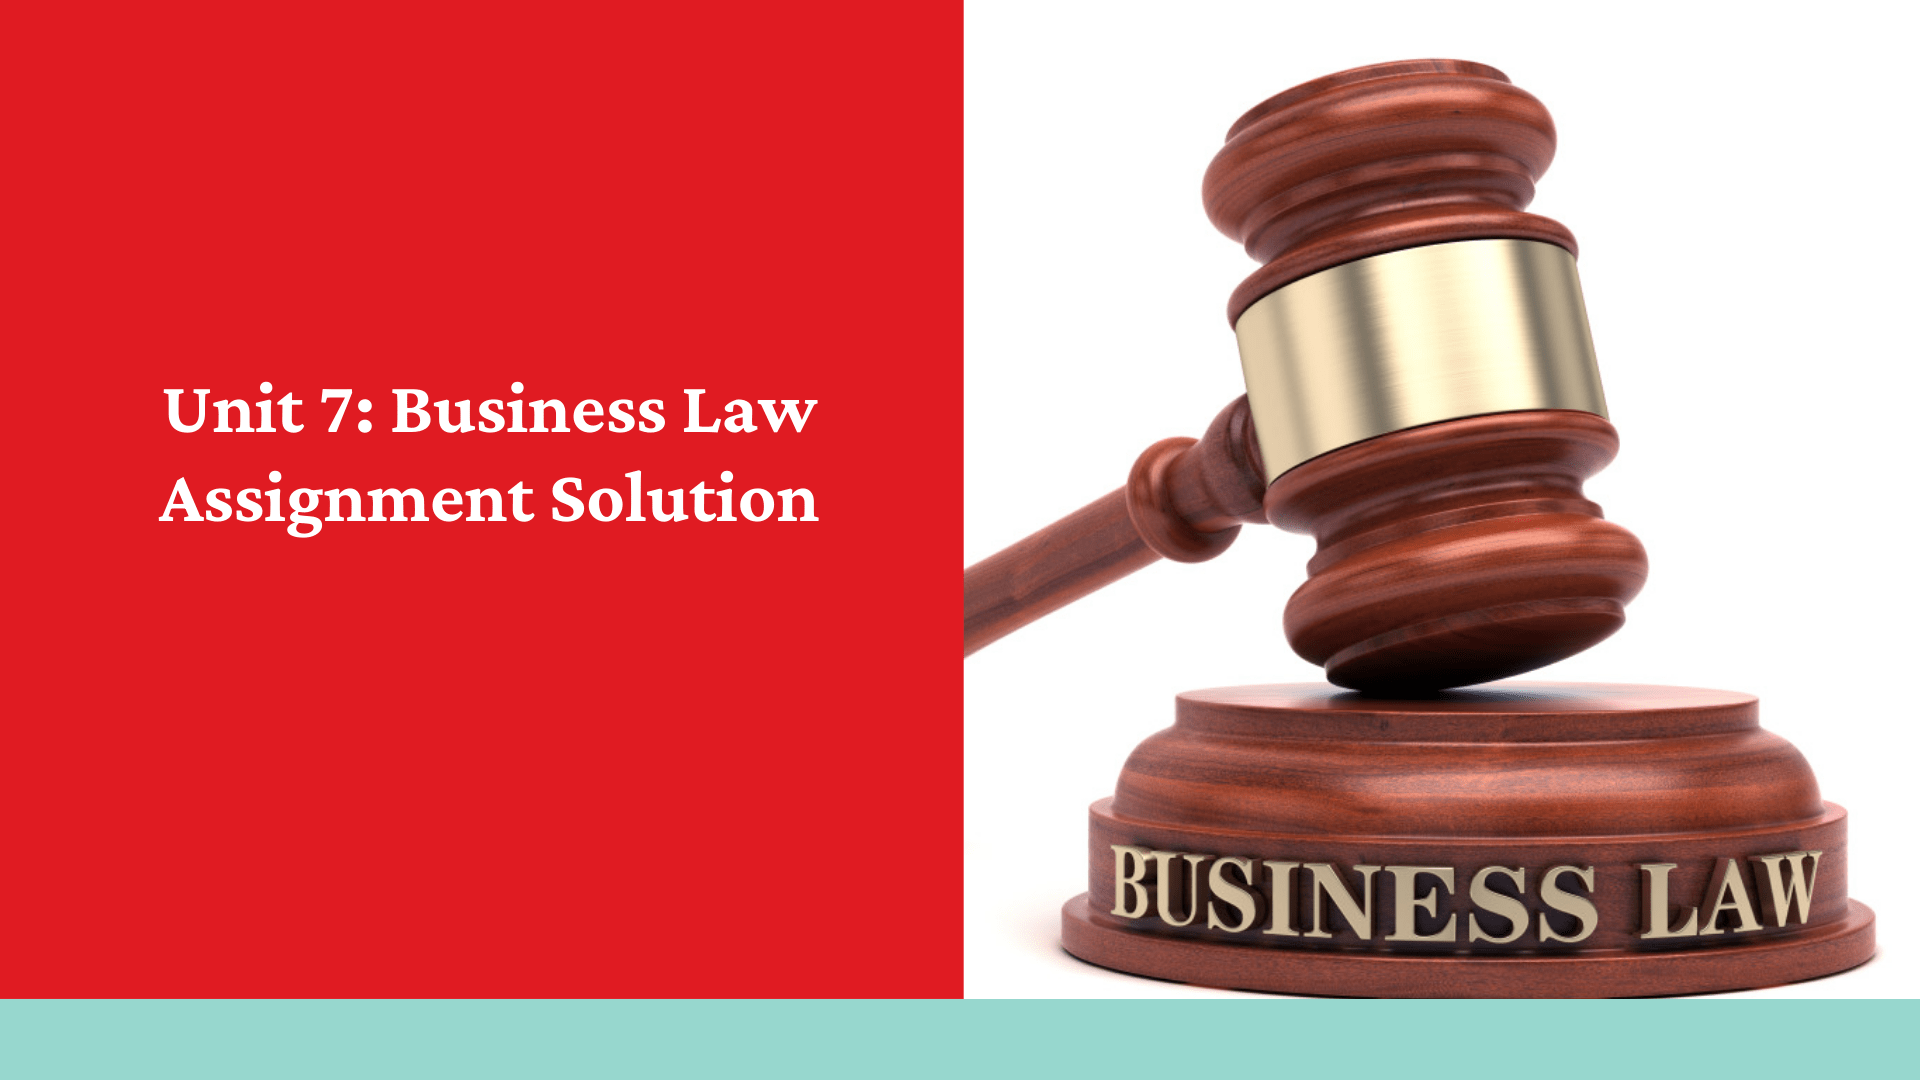 Unit 7: Business Law Assignment Solution